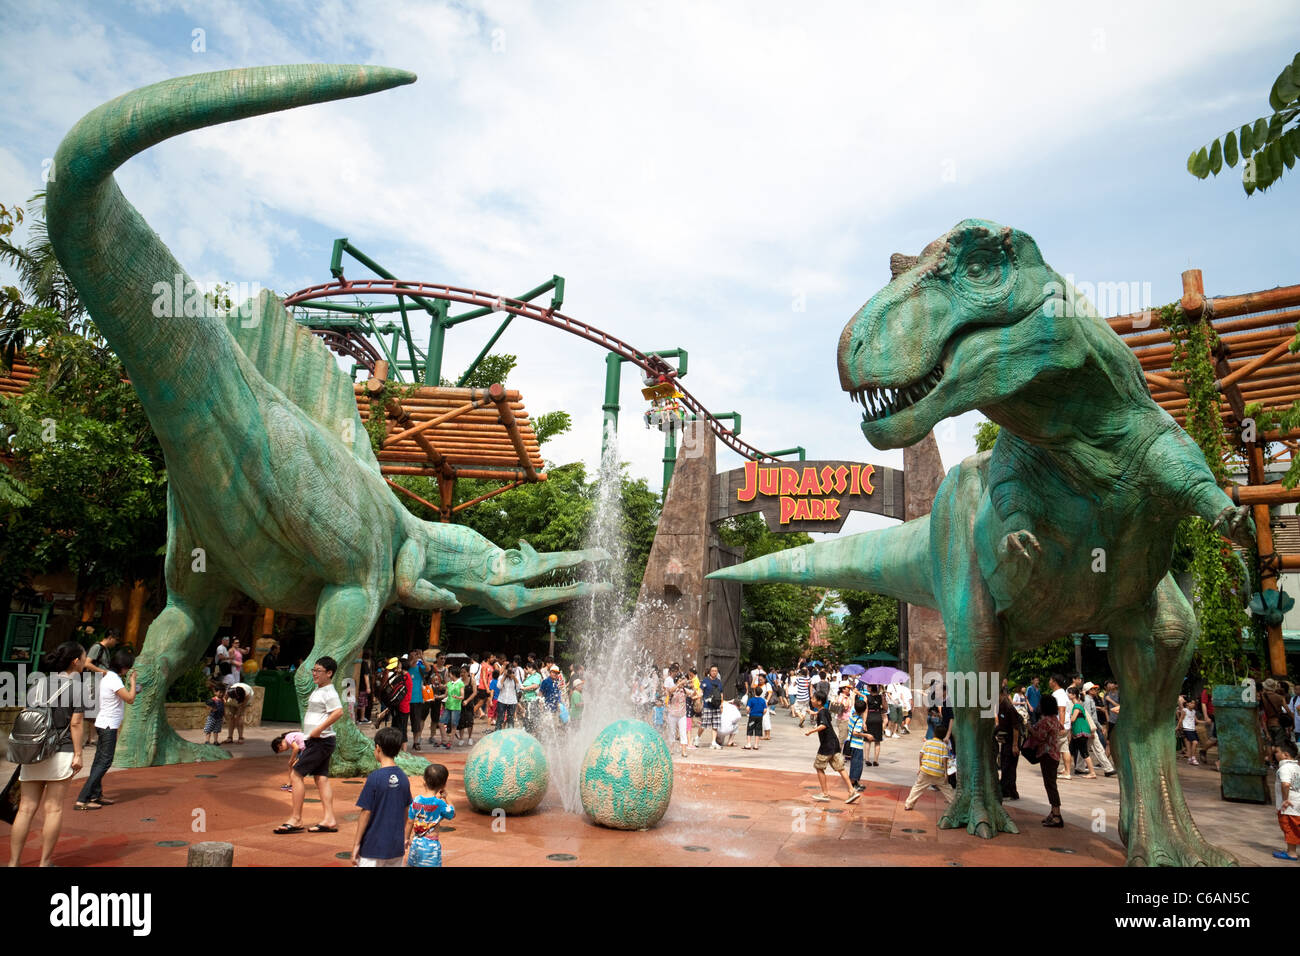 helicopter sell with Stock Photo The Jurassic Park Attraction At Universal Studios Singapore Asia 38344808 on 432 Park Ave New York Citys Highest Apartment Goes Market 85 Million additionally Starteh Bentayga For Sale 1306071 moreover Peugeot 203 One The Very Few Remaining 1949 Cars For Sale 1127312 in addition Government Land Sell Off Threatens Two Historic Hovercraft With Scrap Heap A6849571 in addition Clip 11925629 Stock Footage Soldier Salute Us Military Flag.